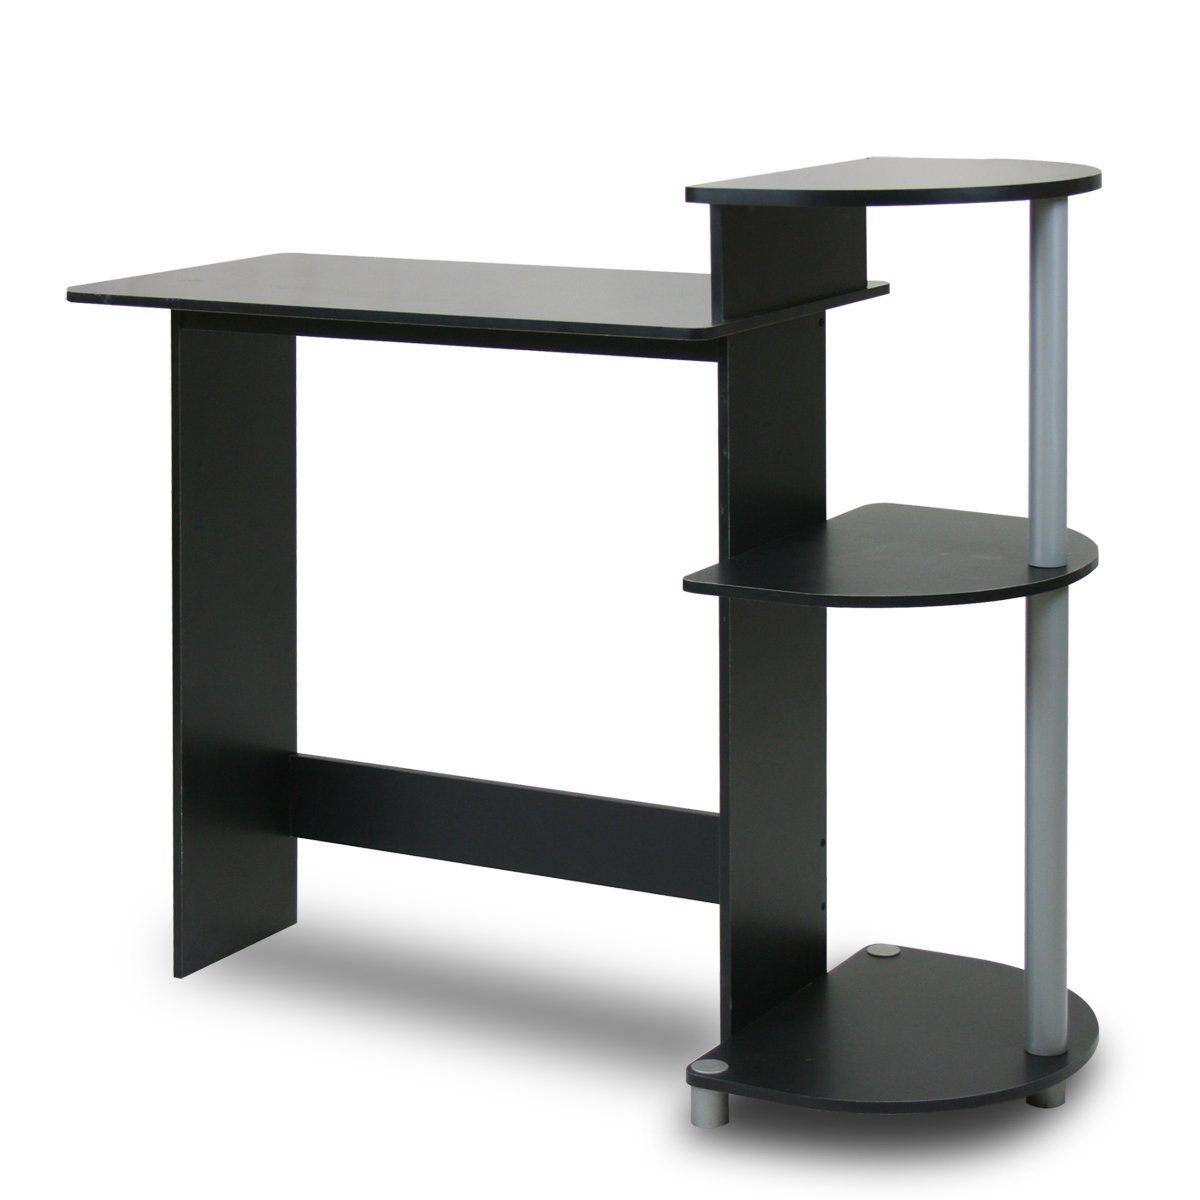 This Contemporary Computer Desk in Black and Grey Finish is designed for space saving and modern stylish look. The materials comply with e1 grade particle board for furniture. There is no foul smell of chemicals, durable and it is the most stable particleboard used to make rta furniture. Care instructions: wipe clean with clean damped cloth. Avoid using harsh chemicals. Please contact support@furinno for missing parts, damaged goods, or other questions. We are pleased to send you the replacement part free of charge. Pictures are for illustration purpose. All decor items are not included in this offer. Pictures are for illustration purpose. All decor items are not included in this offer.